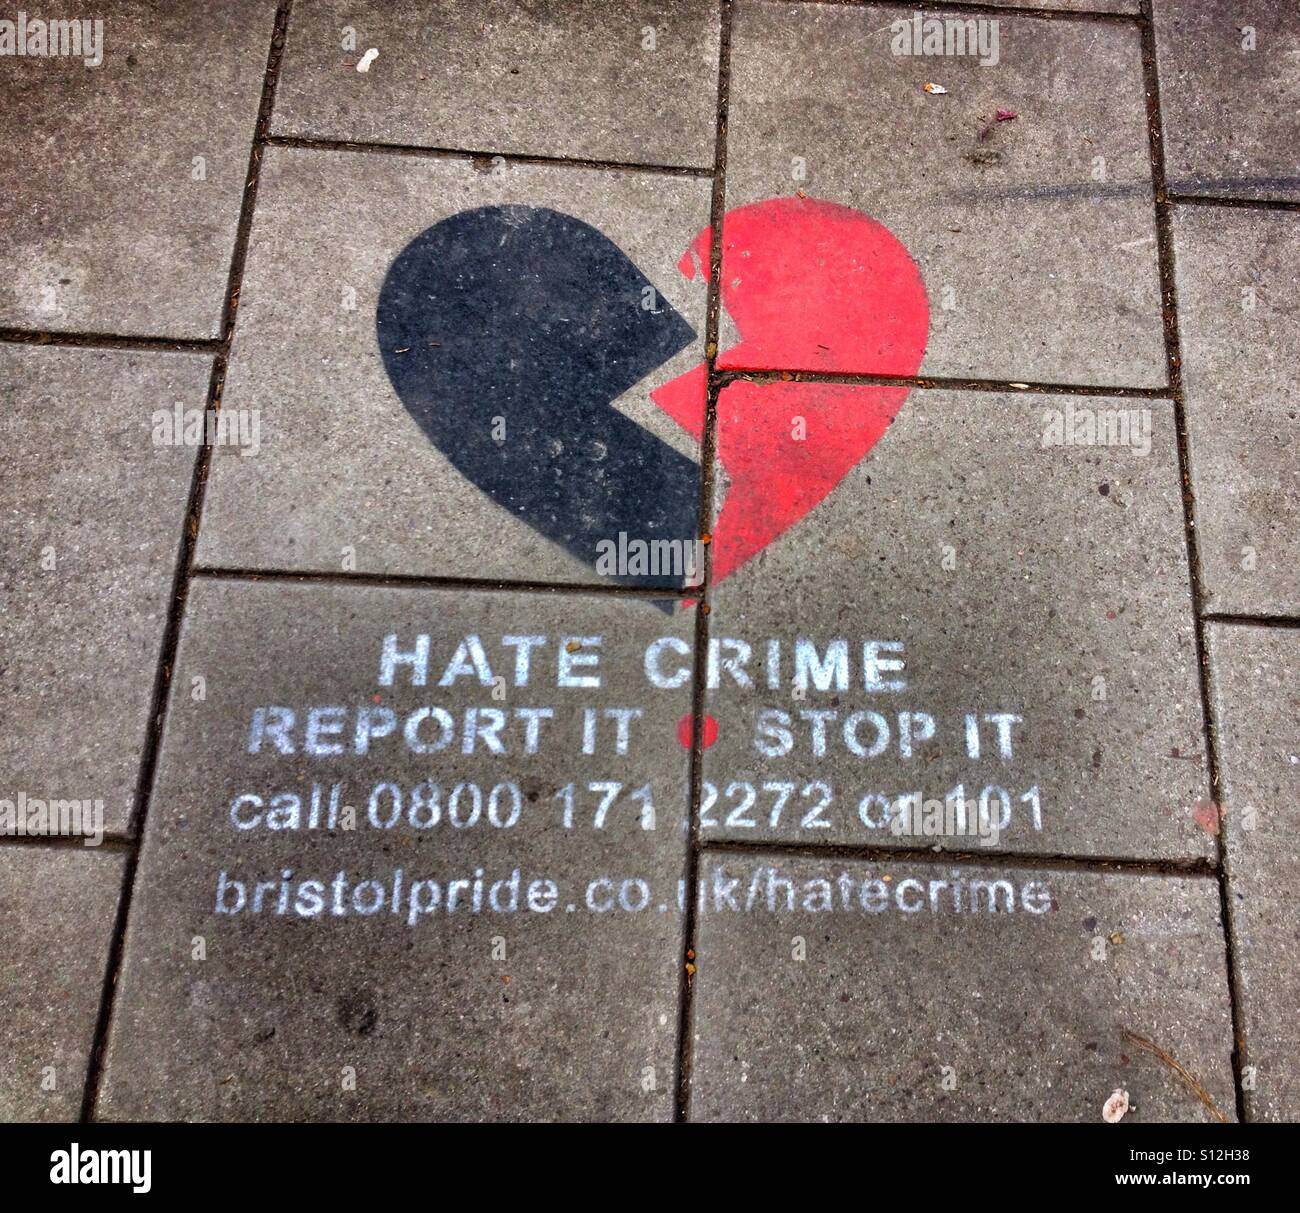 Graffiti on a pavement in Bristol, UK urging members of the public to report hate crime - Stock Image